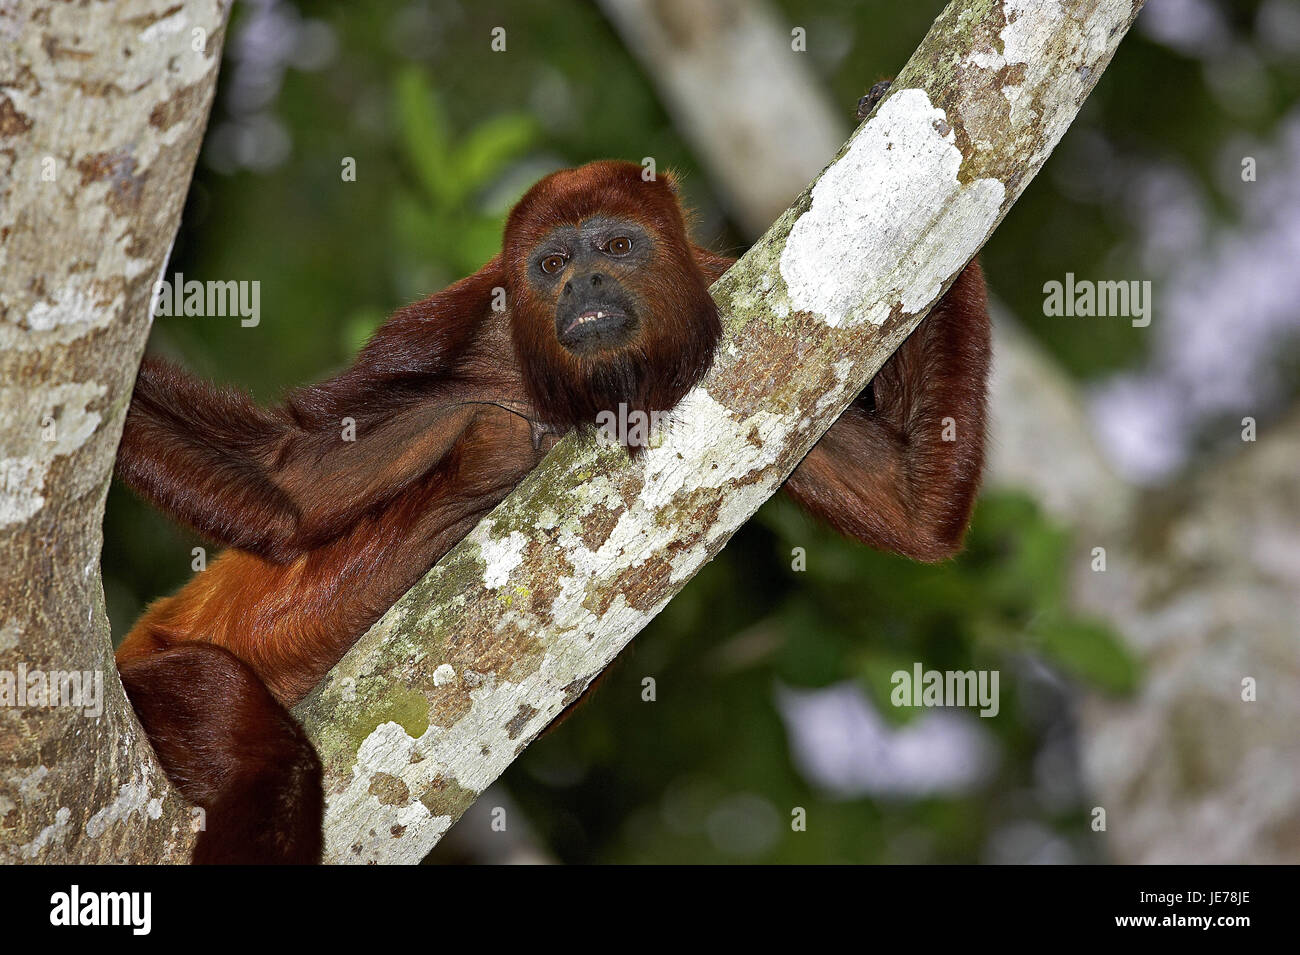 Red howling monkey, Alouatta seniculus, adult animal, stand, branch, batch Lianos, Venezuela, - Stock Image